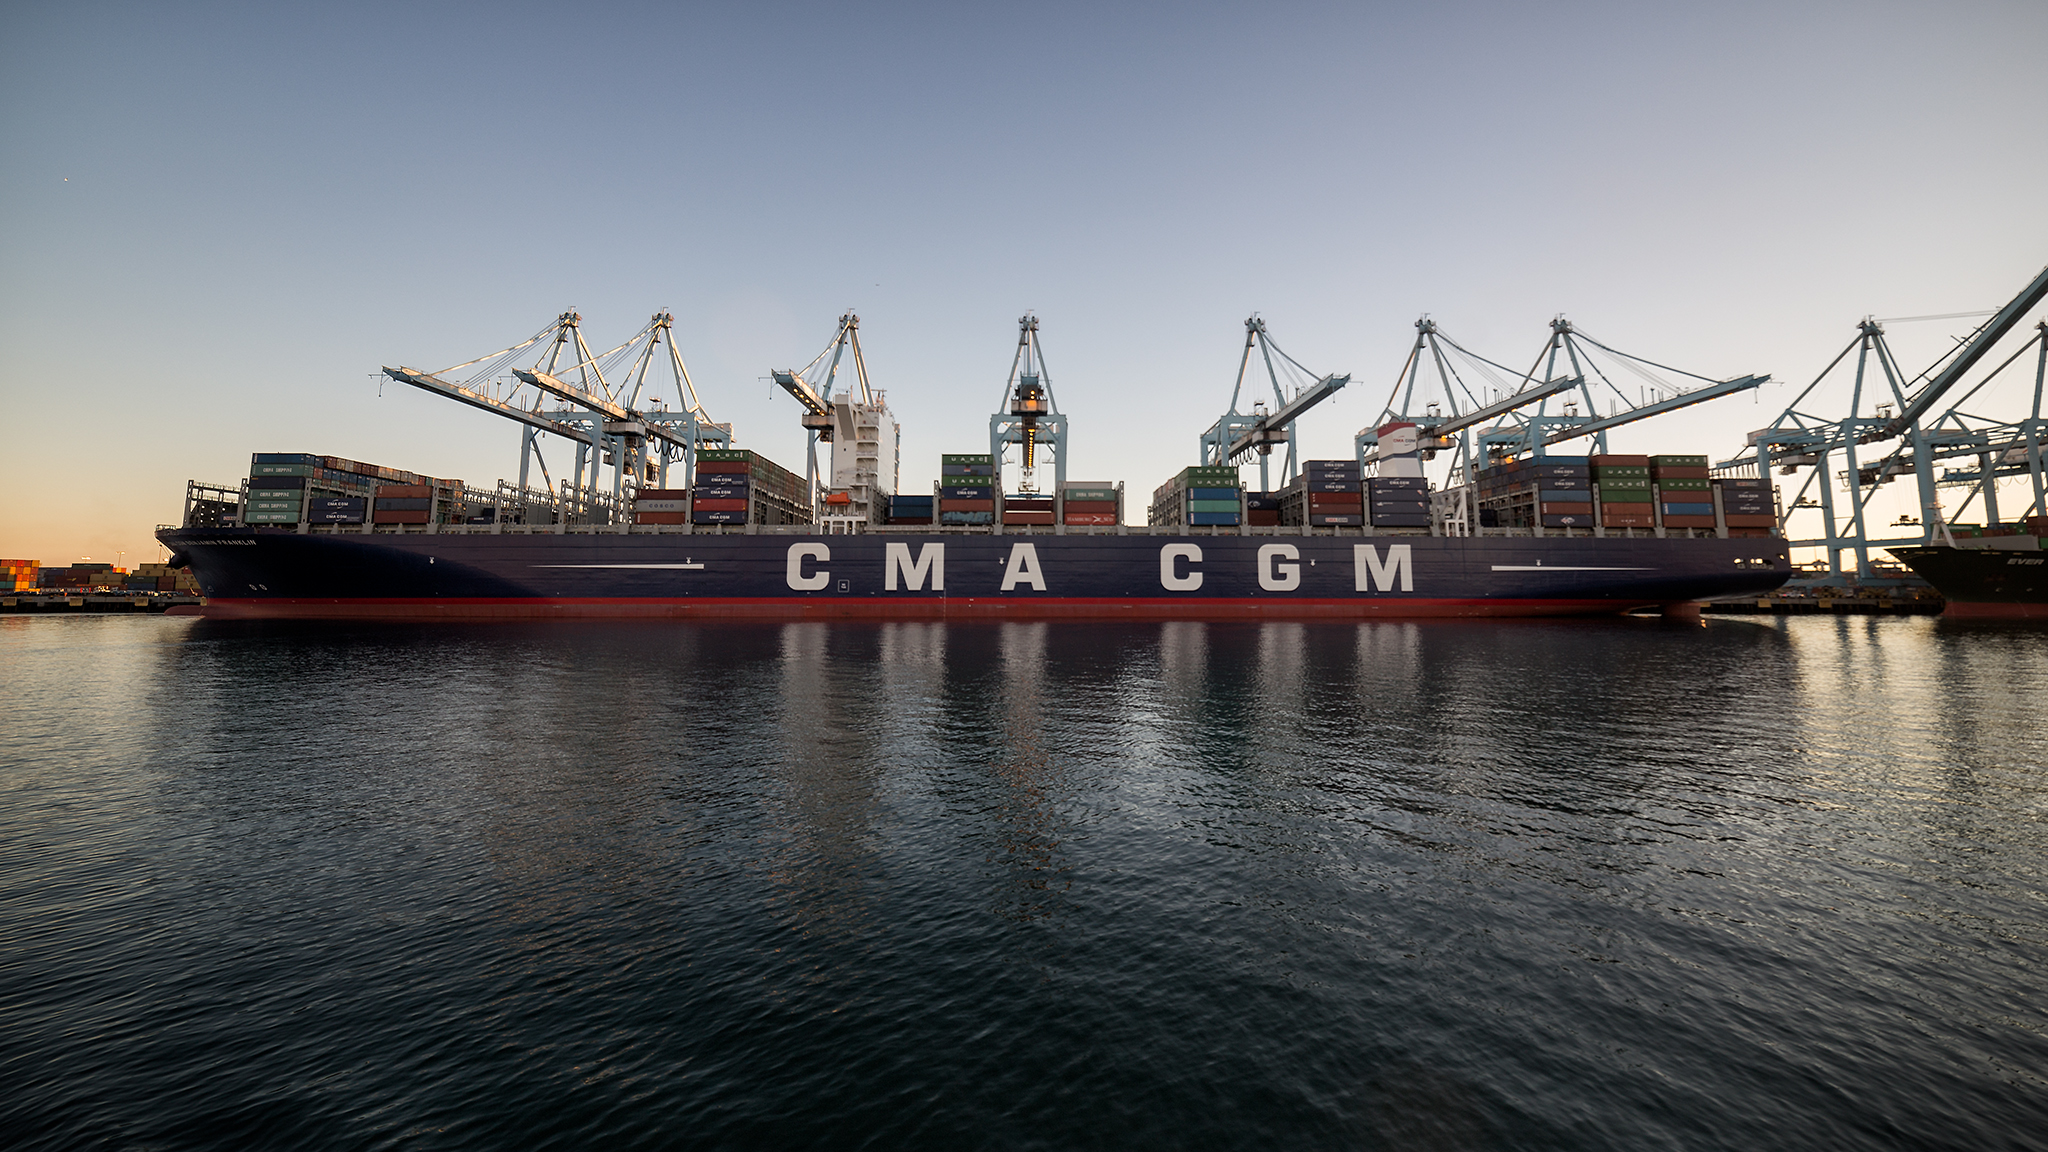 The CMA CGM Benjamin Franklin herself. She is the largest container vessel every to visit the Americas. She is longer than the Empire State Building, and wider than a football field is long.